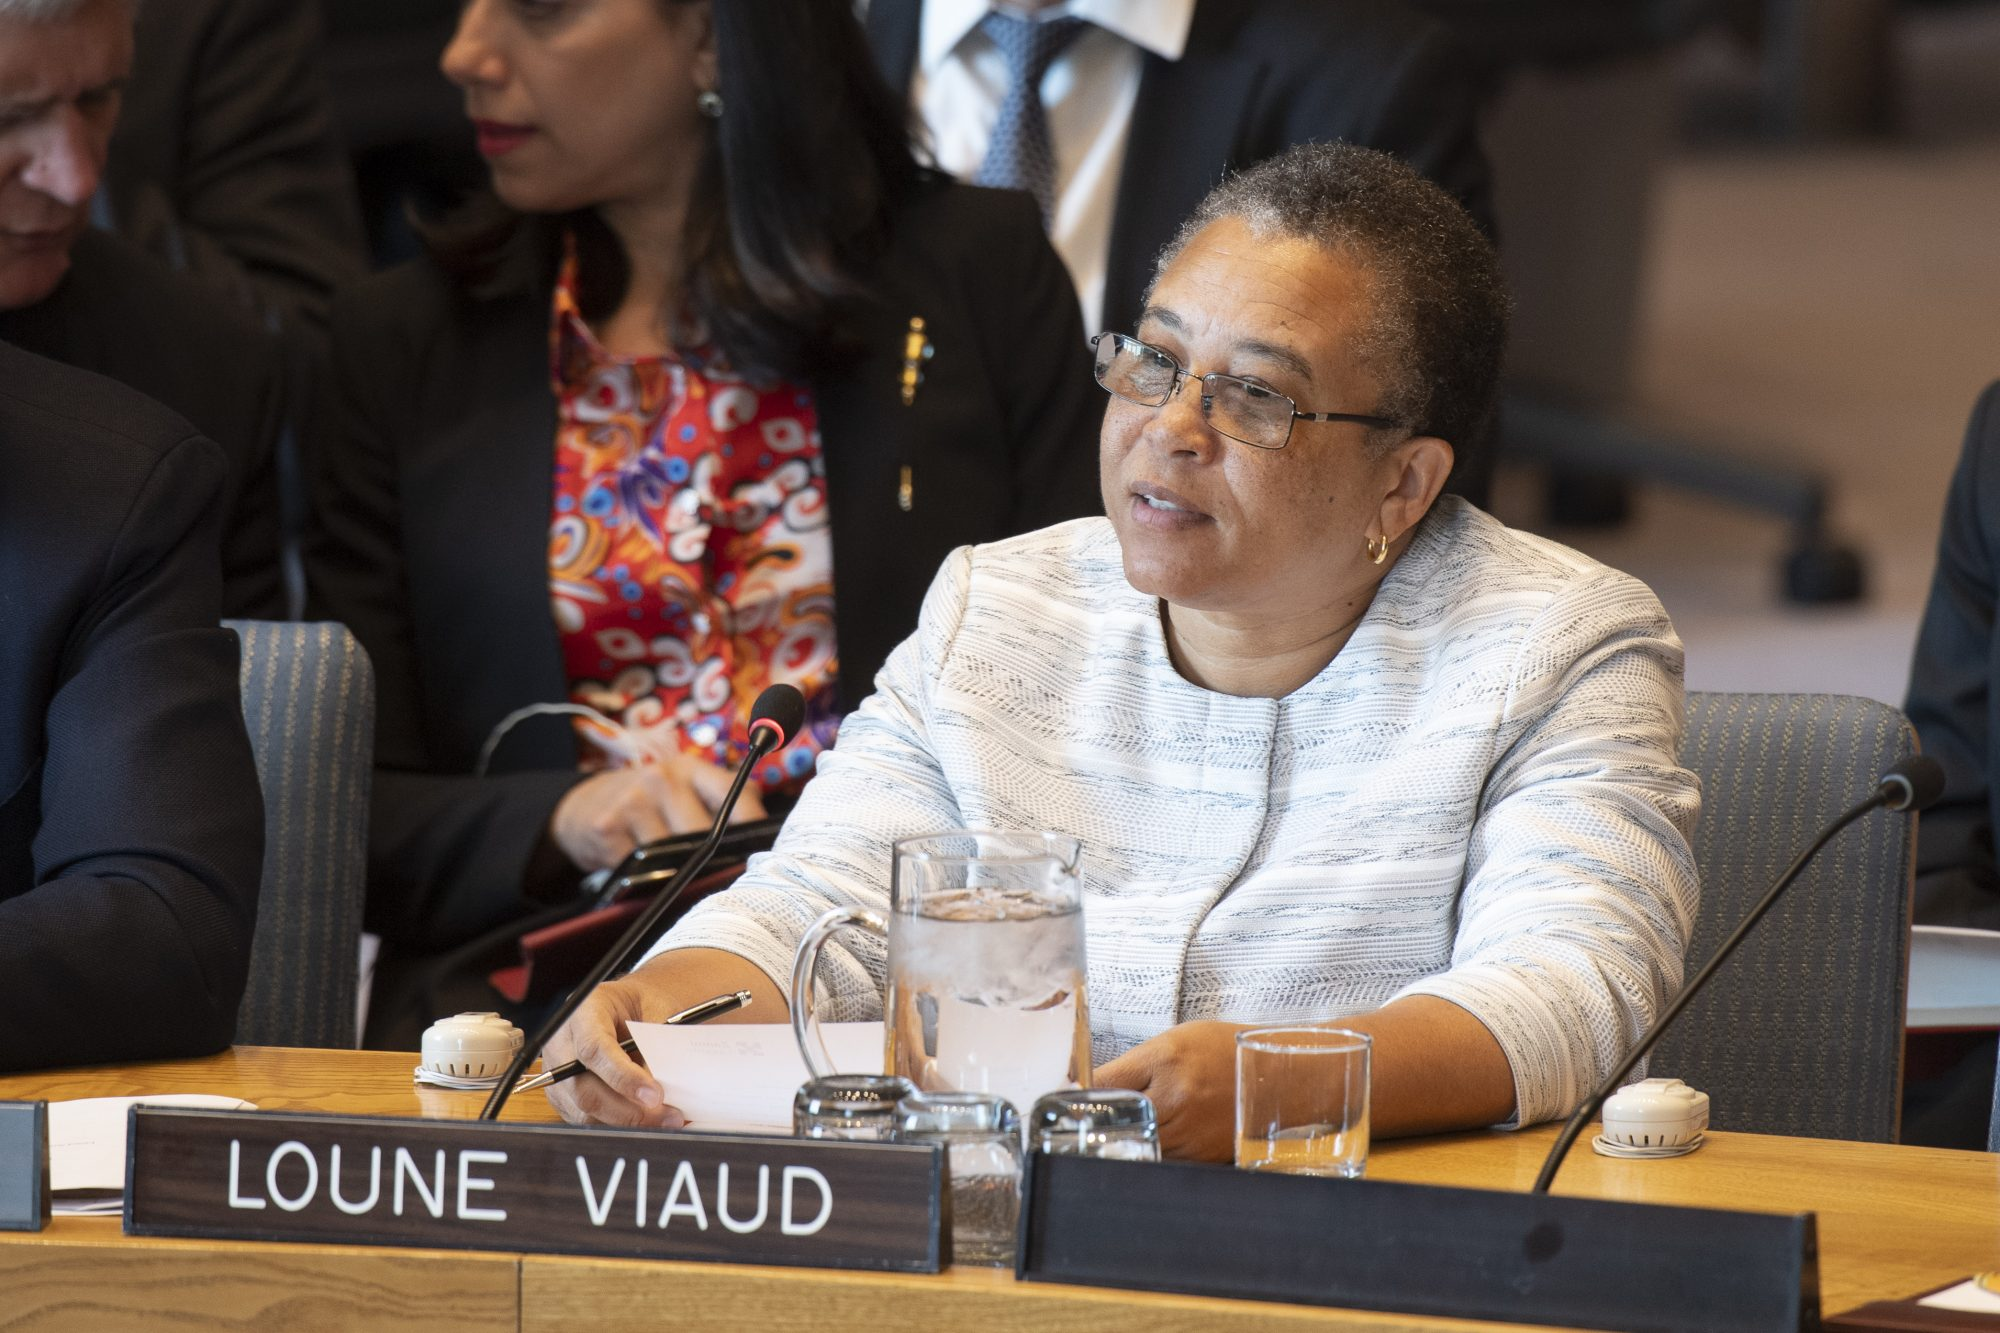 UN Security Council Briefing on Haiti by Loune Viaud